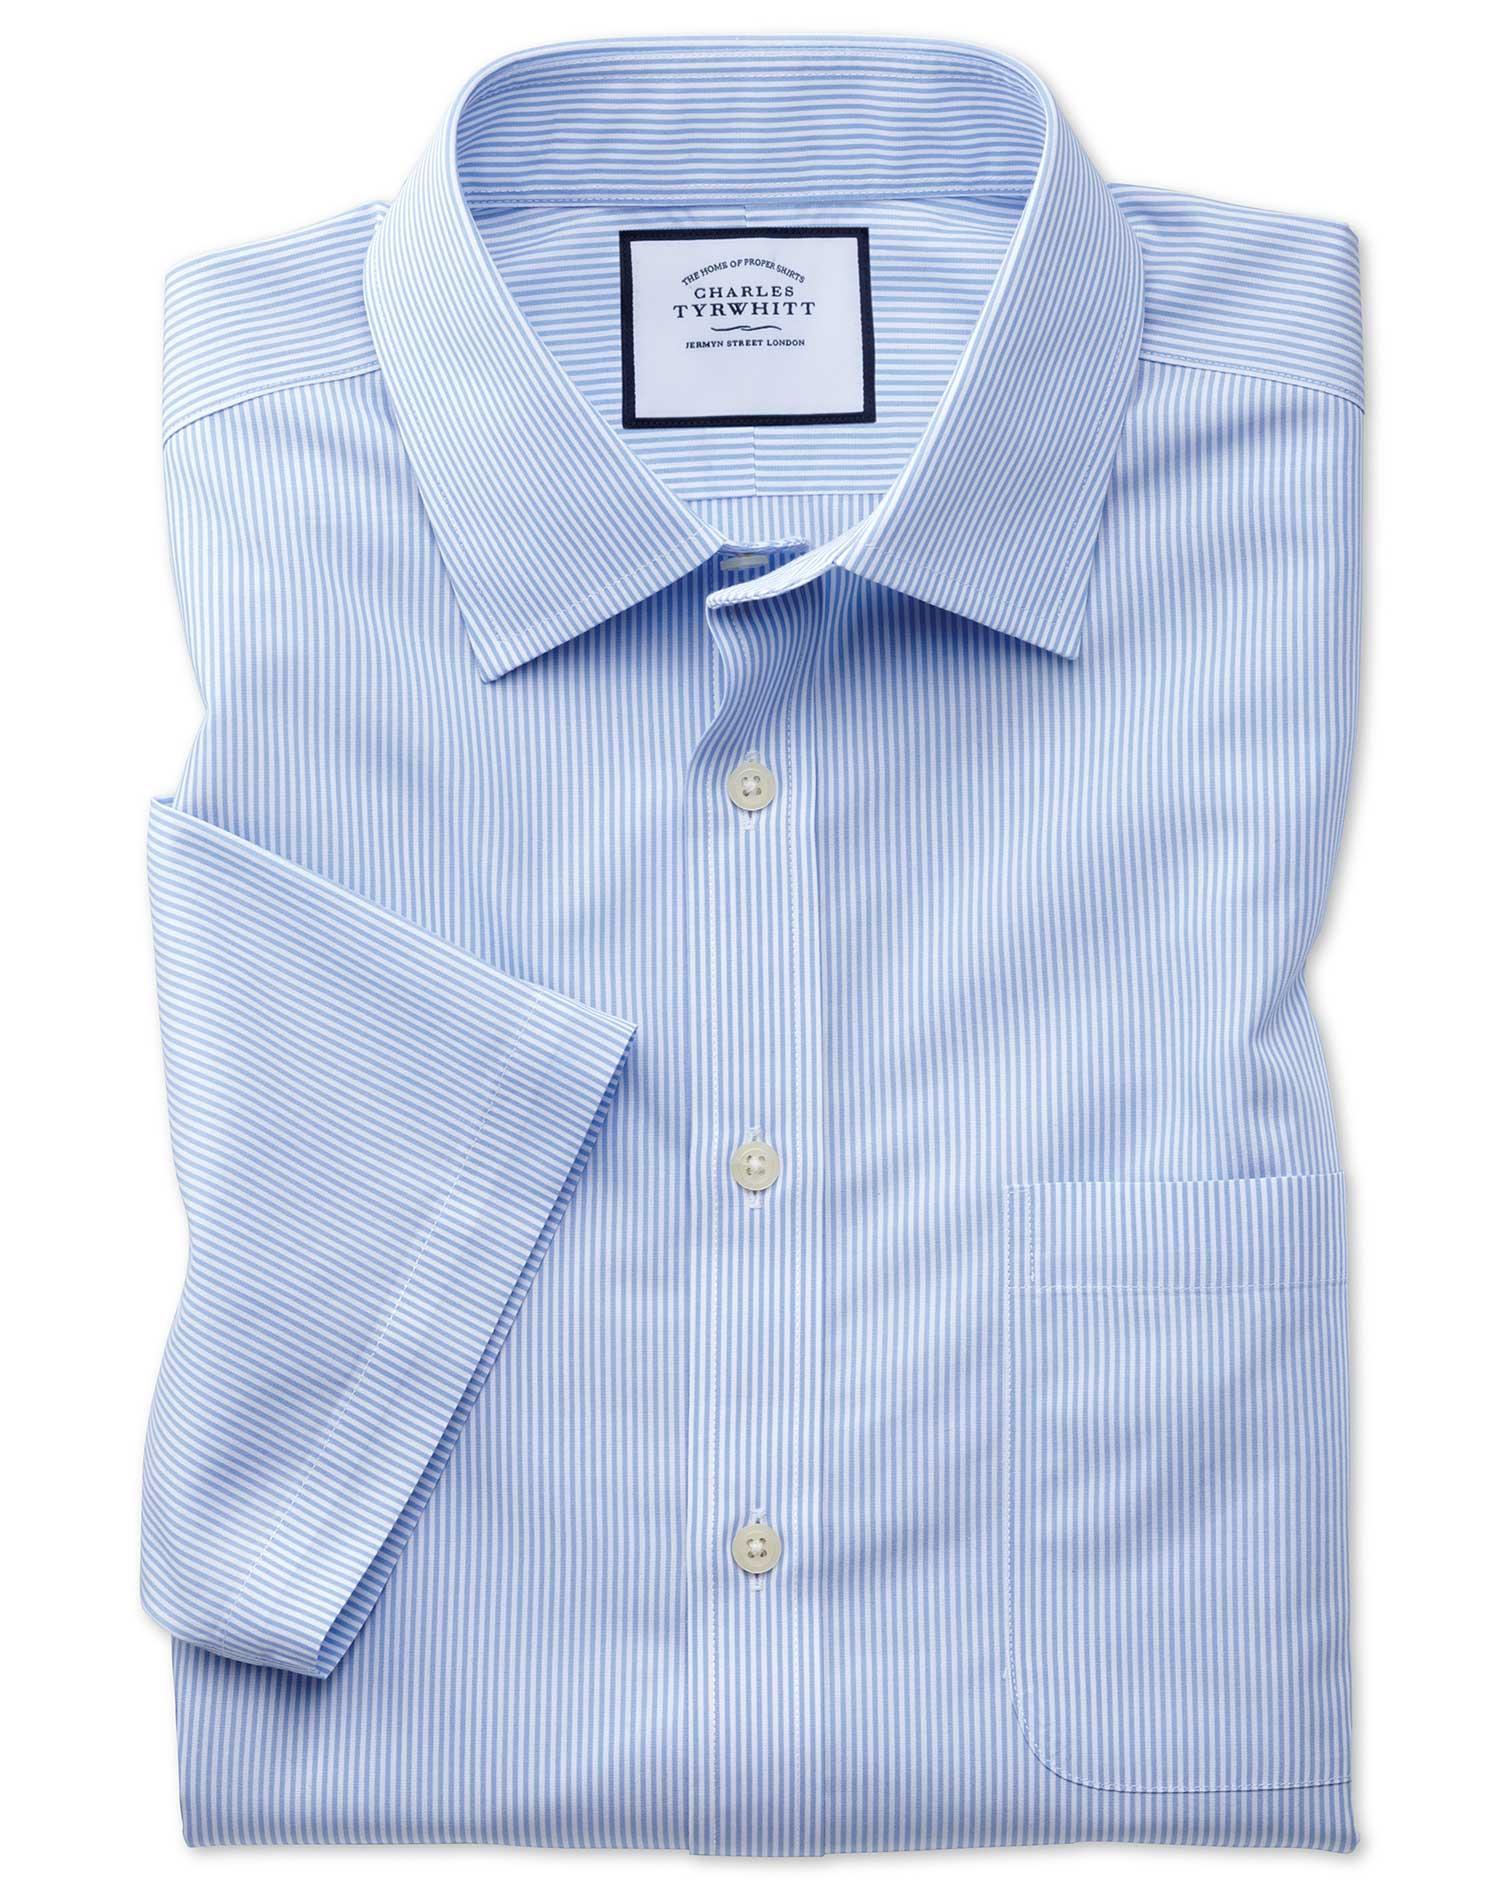 Slim Fit Non-Iron Sky Blue Bengal Stripe Short Sleeve Cotton Formal Shirt Size 15/Short by Charles T